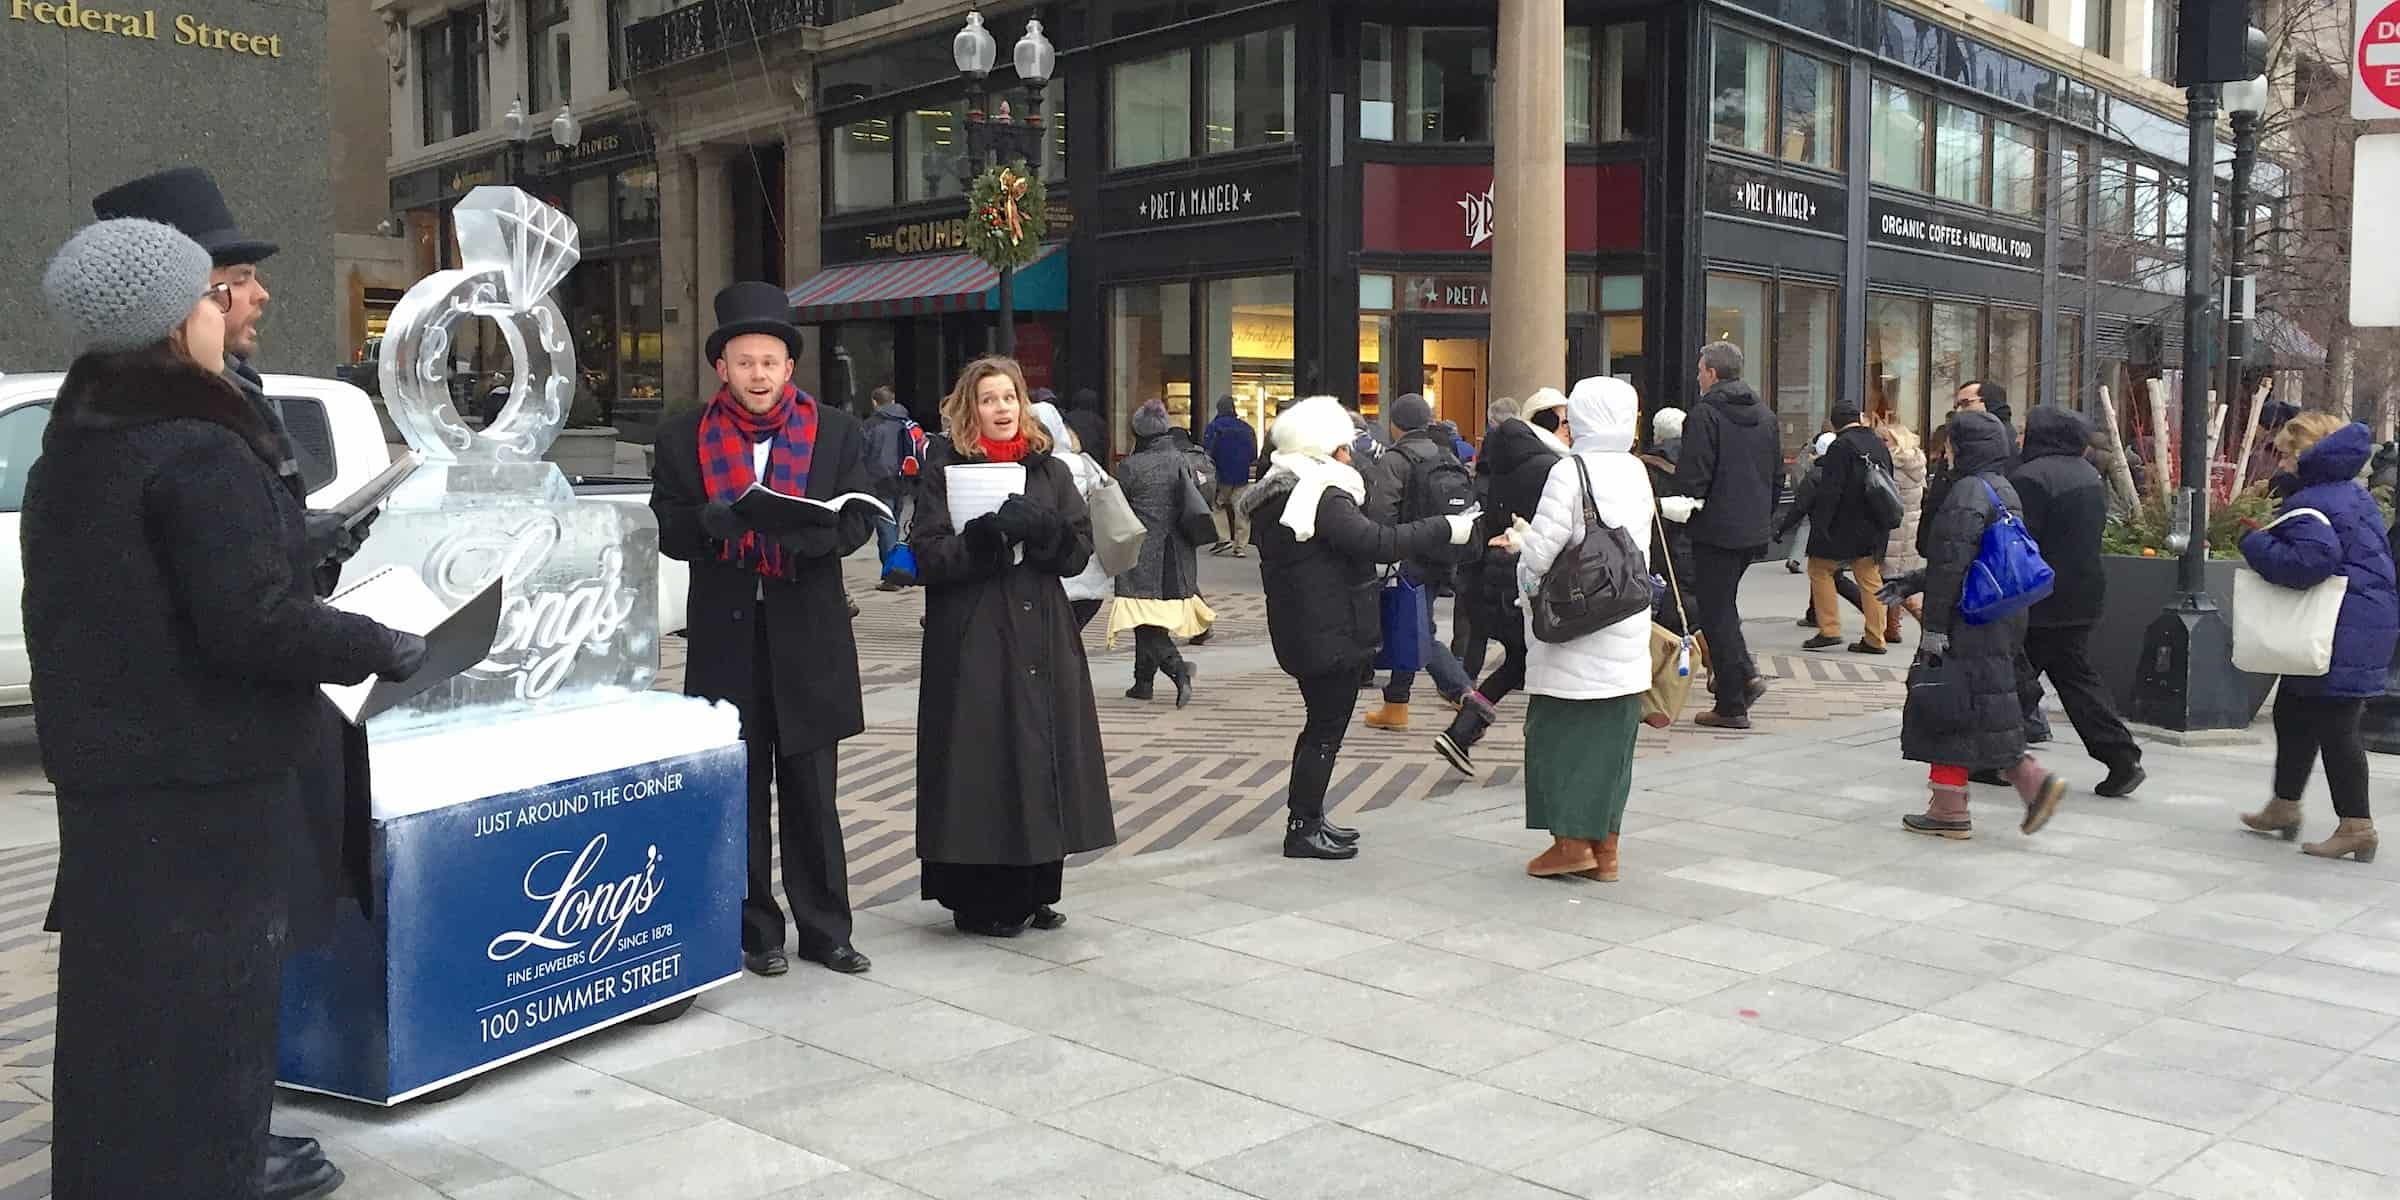 Jewelry Holiday Season Carolers Street Strategic Marketing Activation Stunt -South Station, Boston